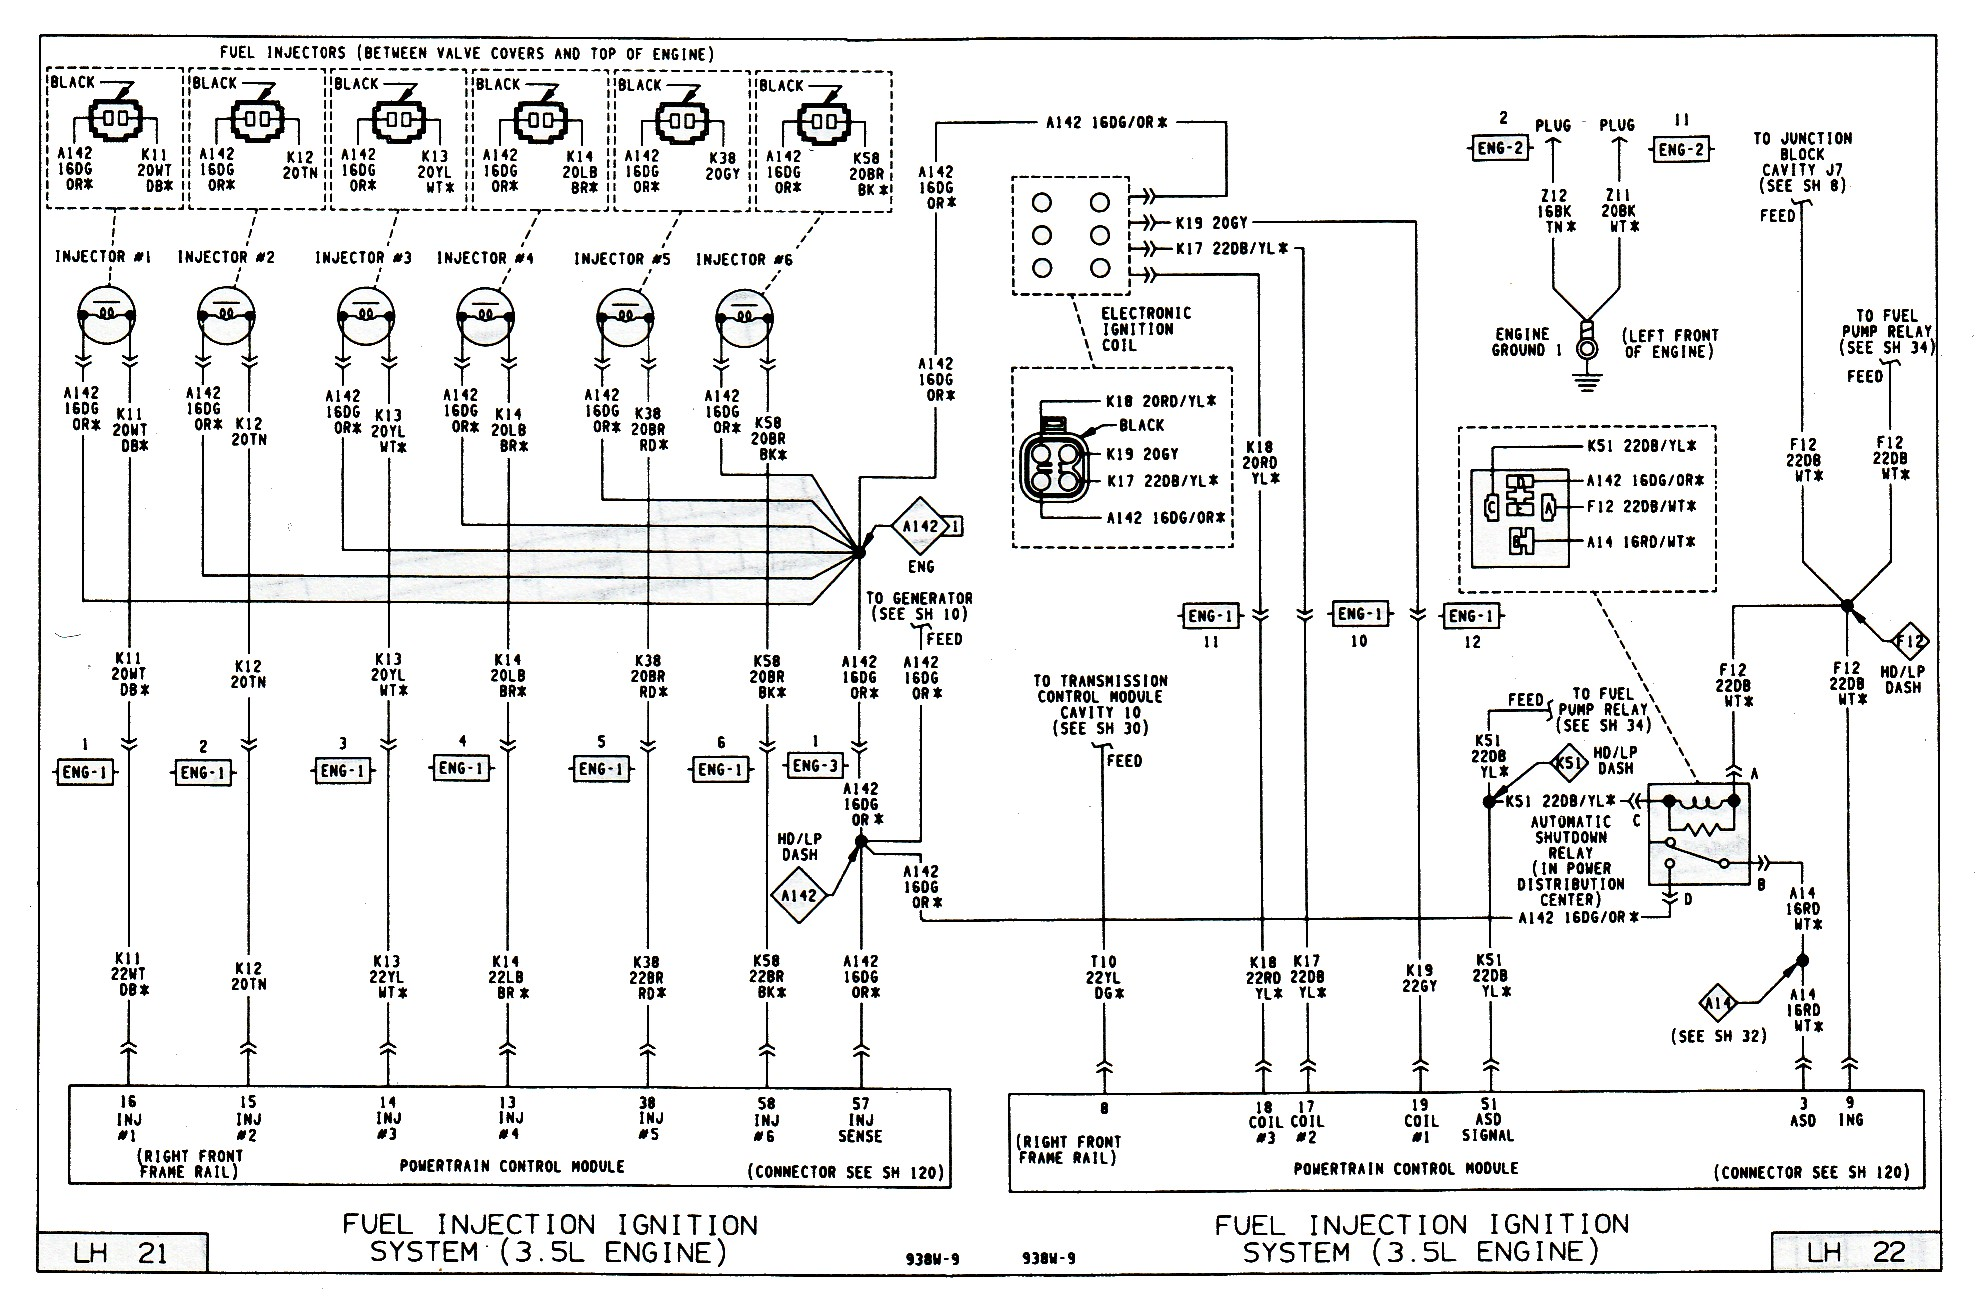 The wiring diagram is from a vehicle with a misfire